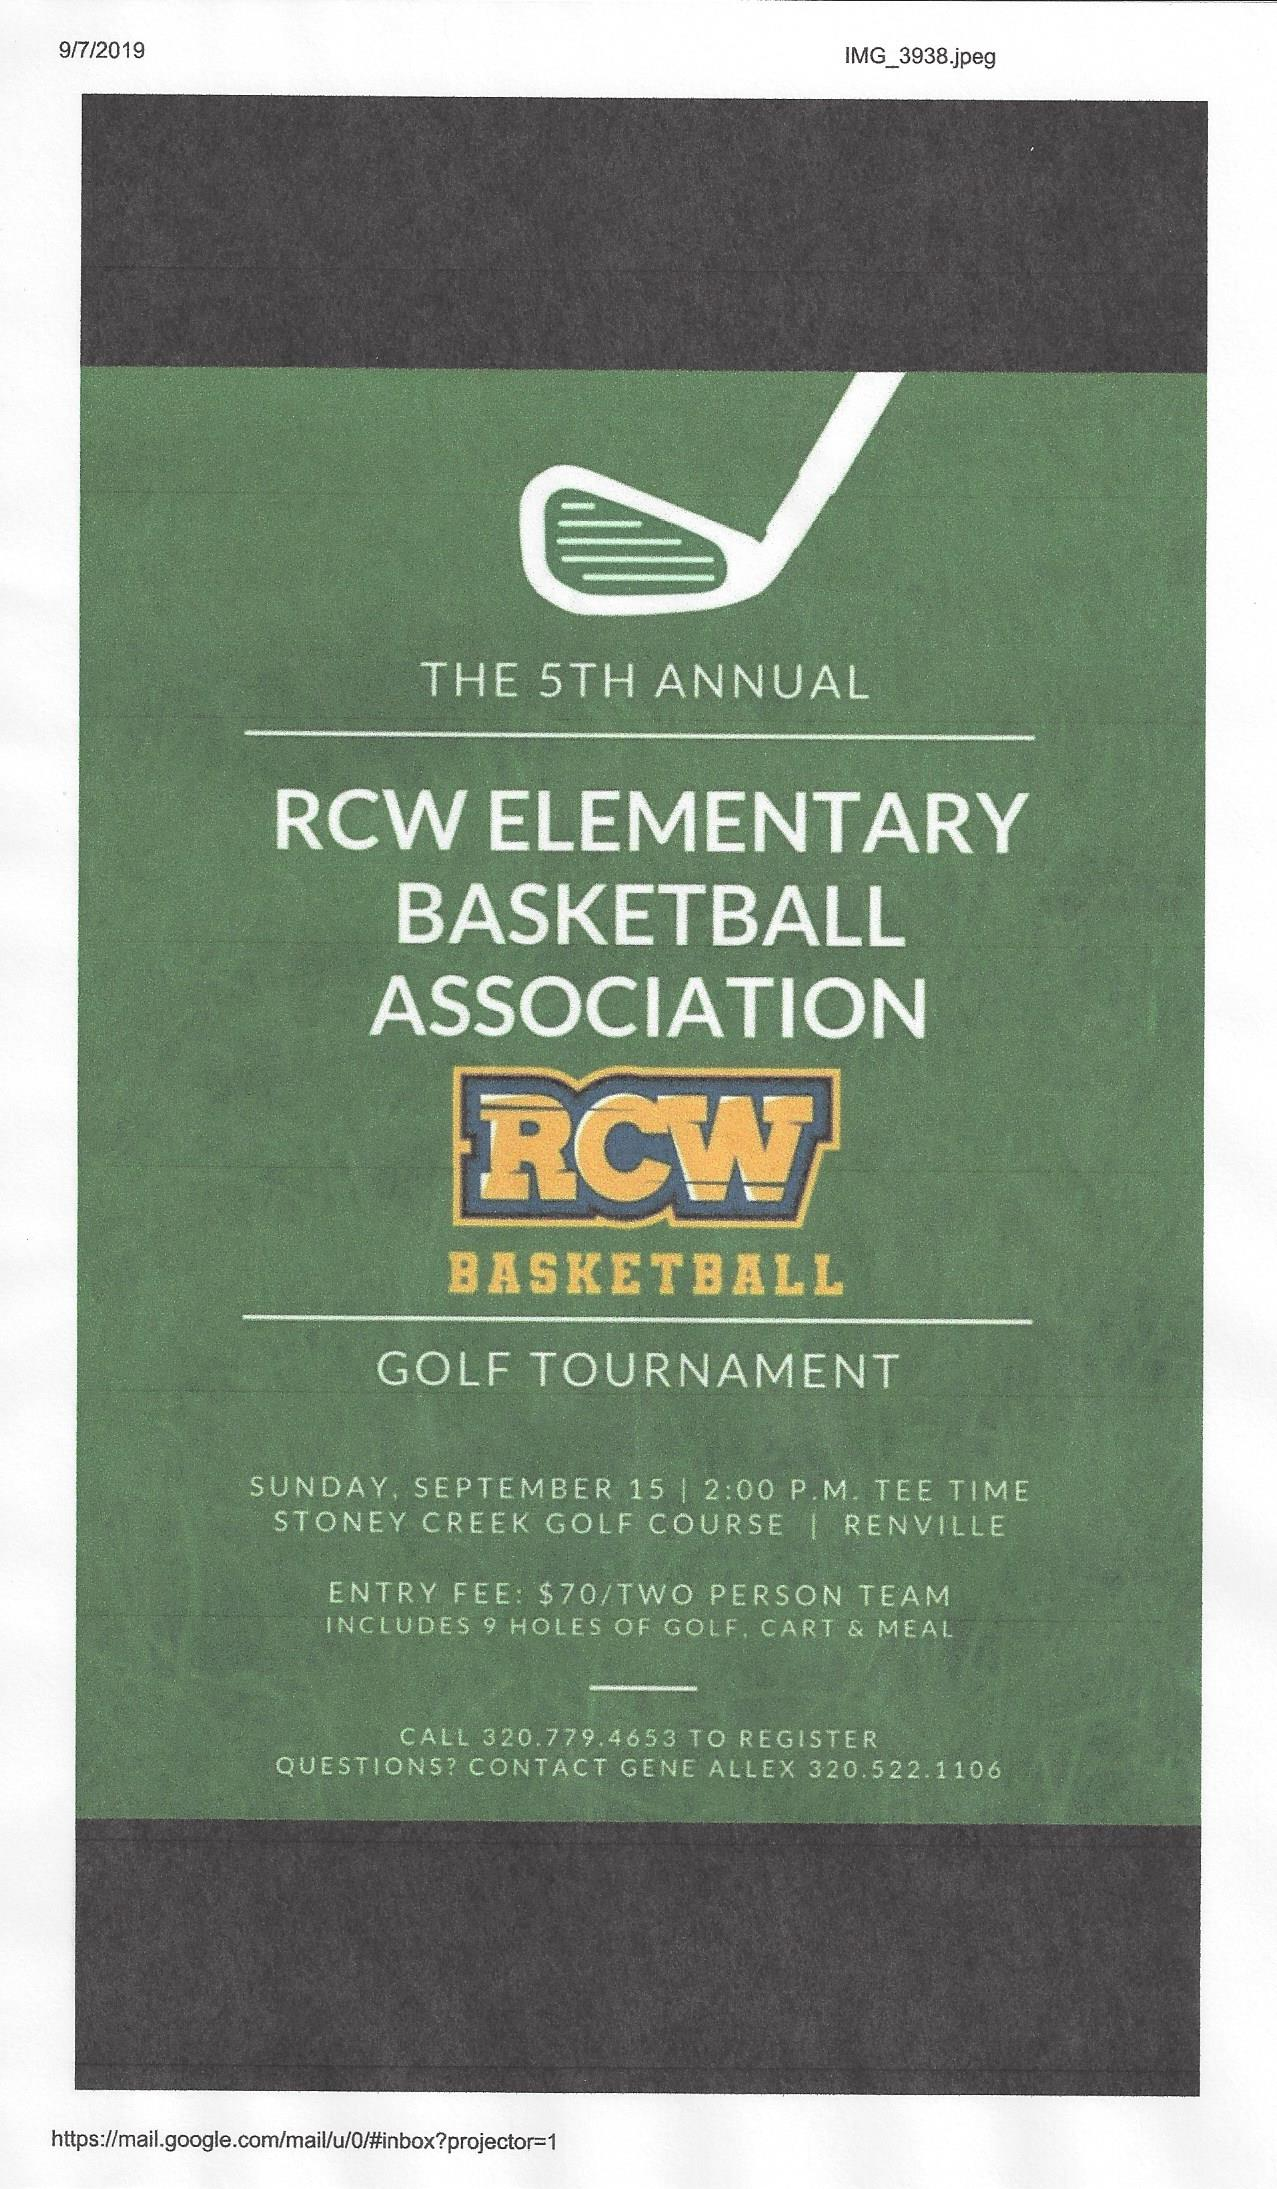 5th Annual RCW Elementry Basketball Association: Golf